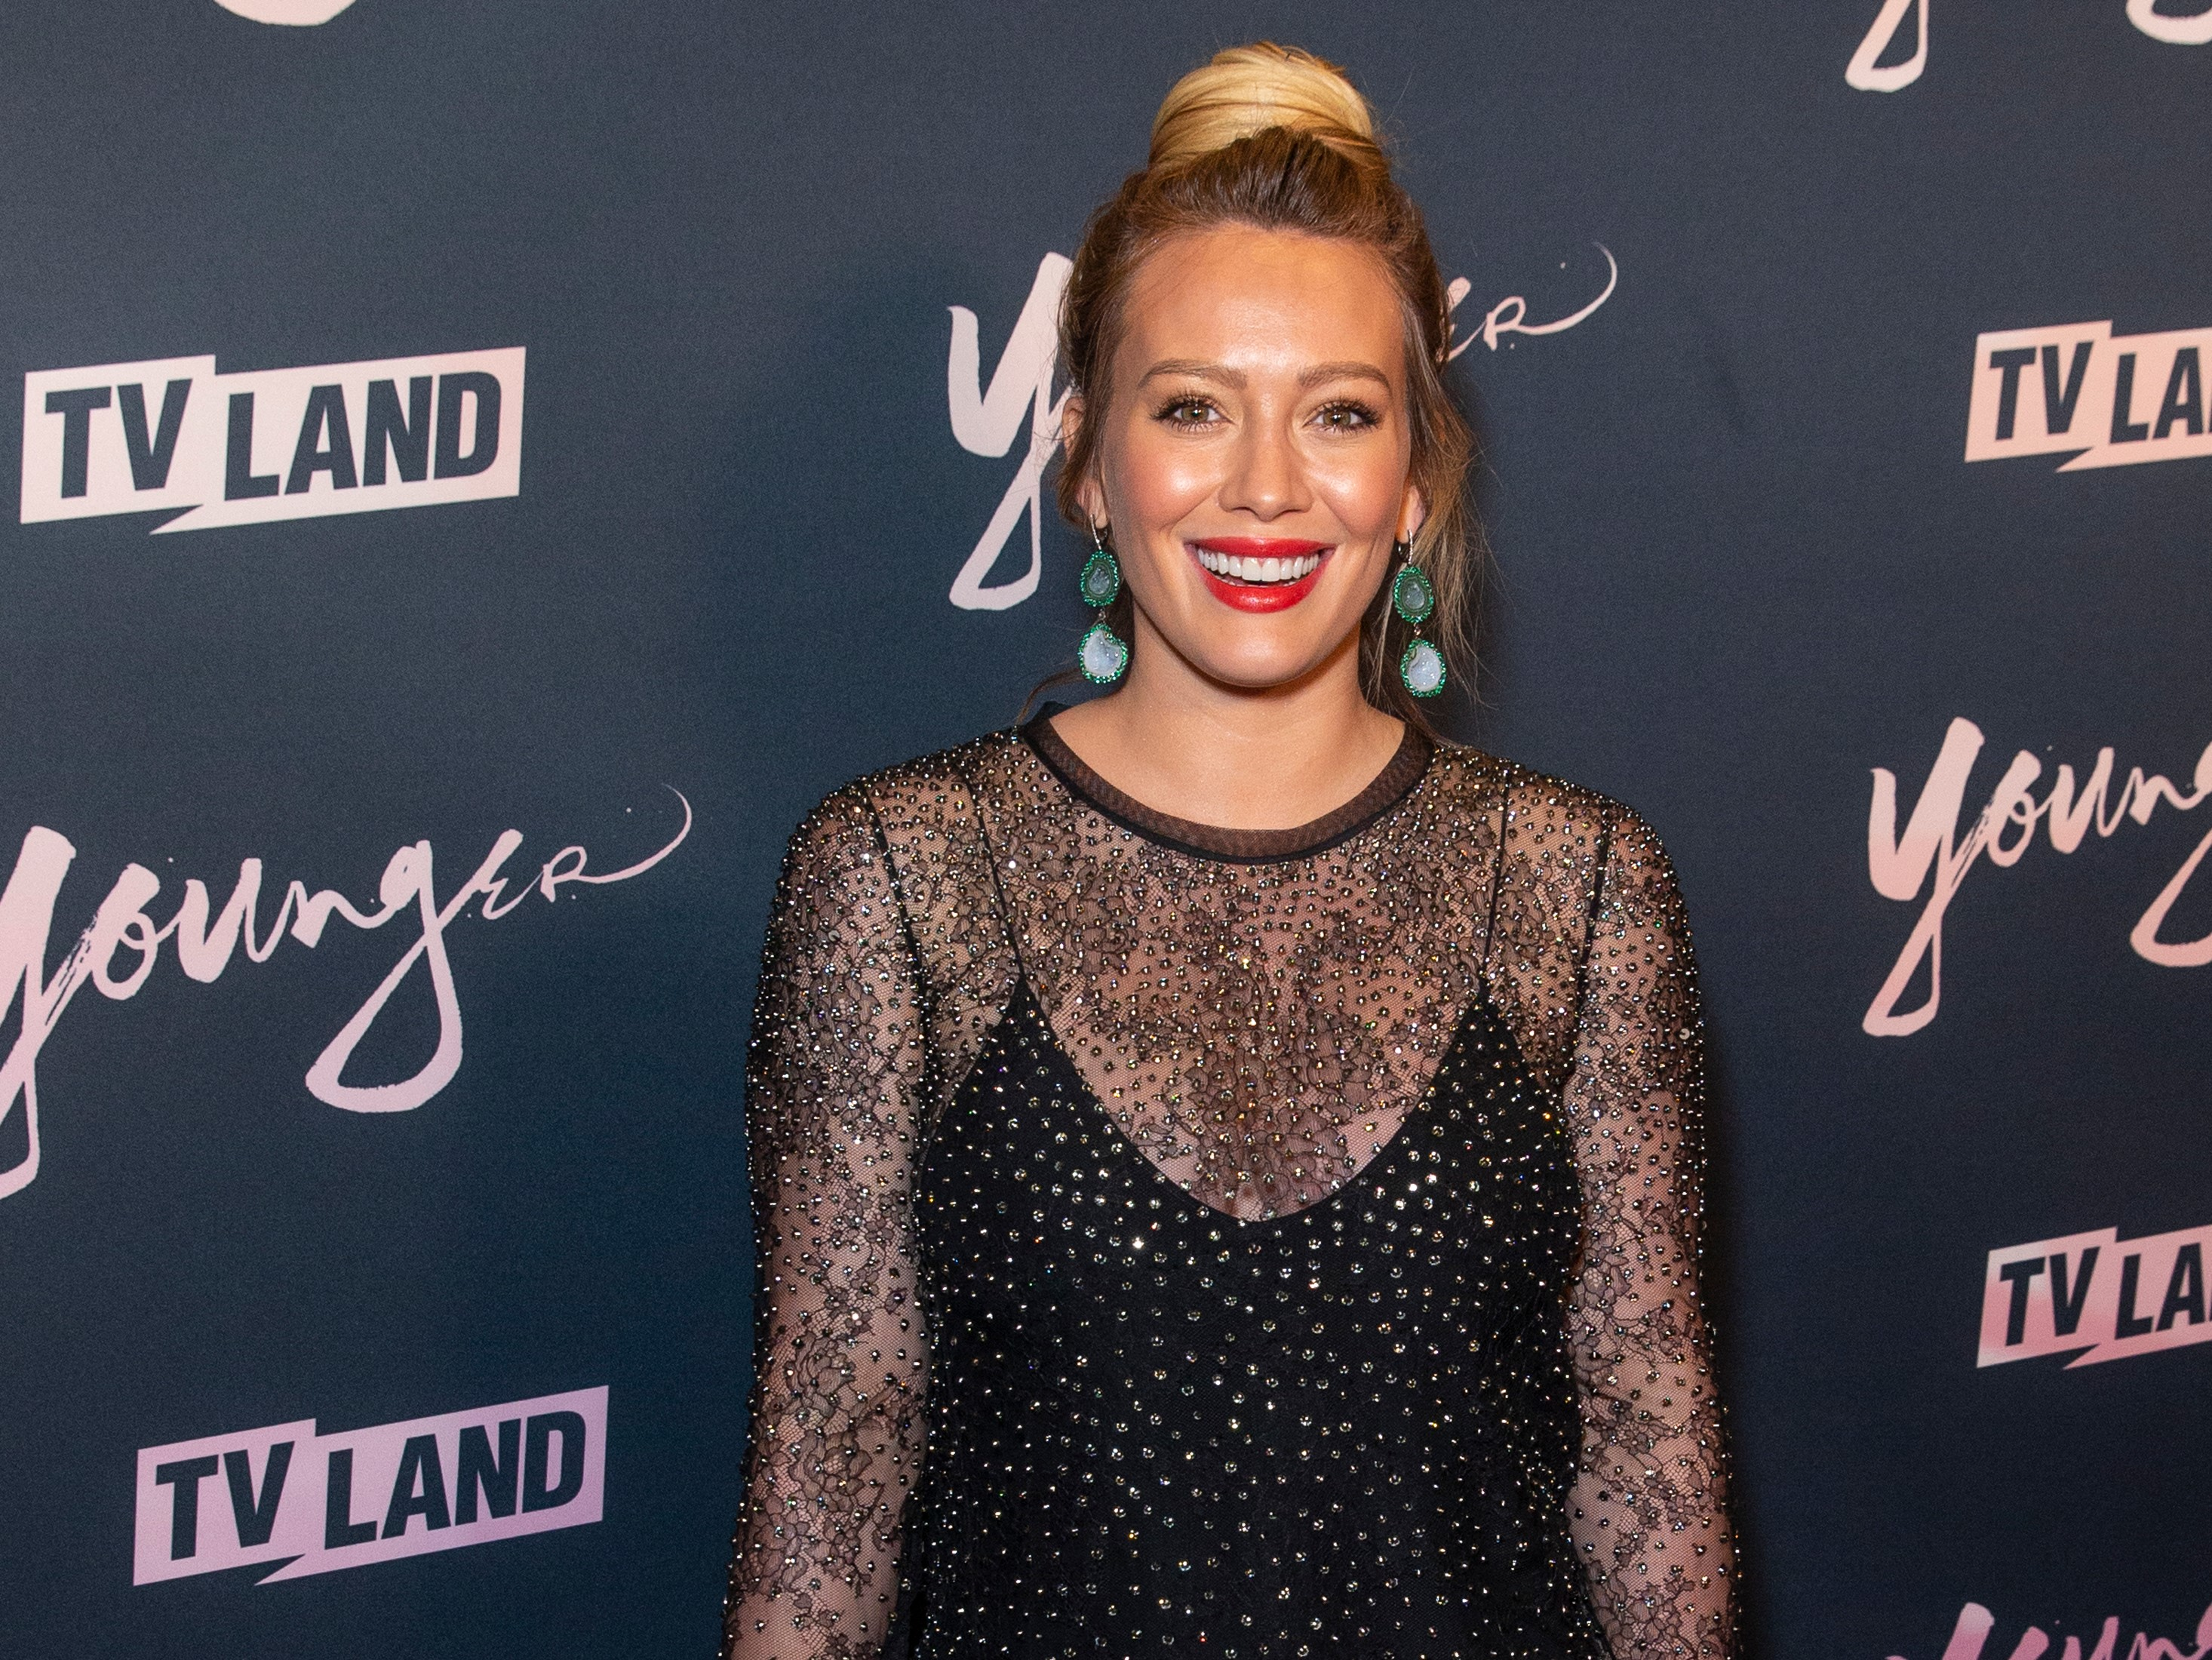 Hilary Duff Hair Bun Black Dress Younger TV Land Red Carpet